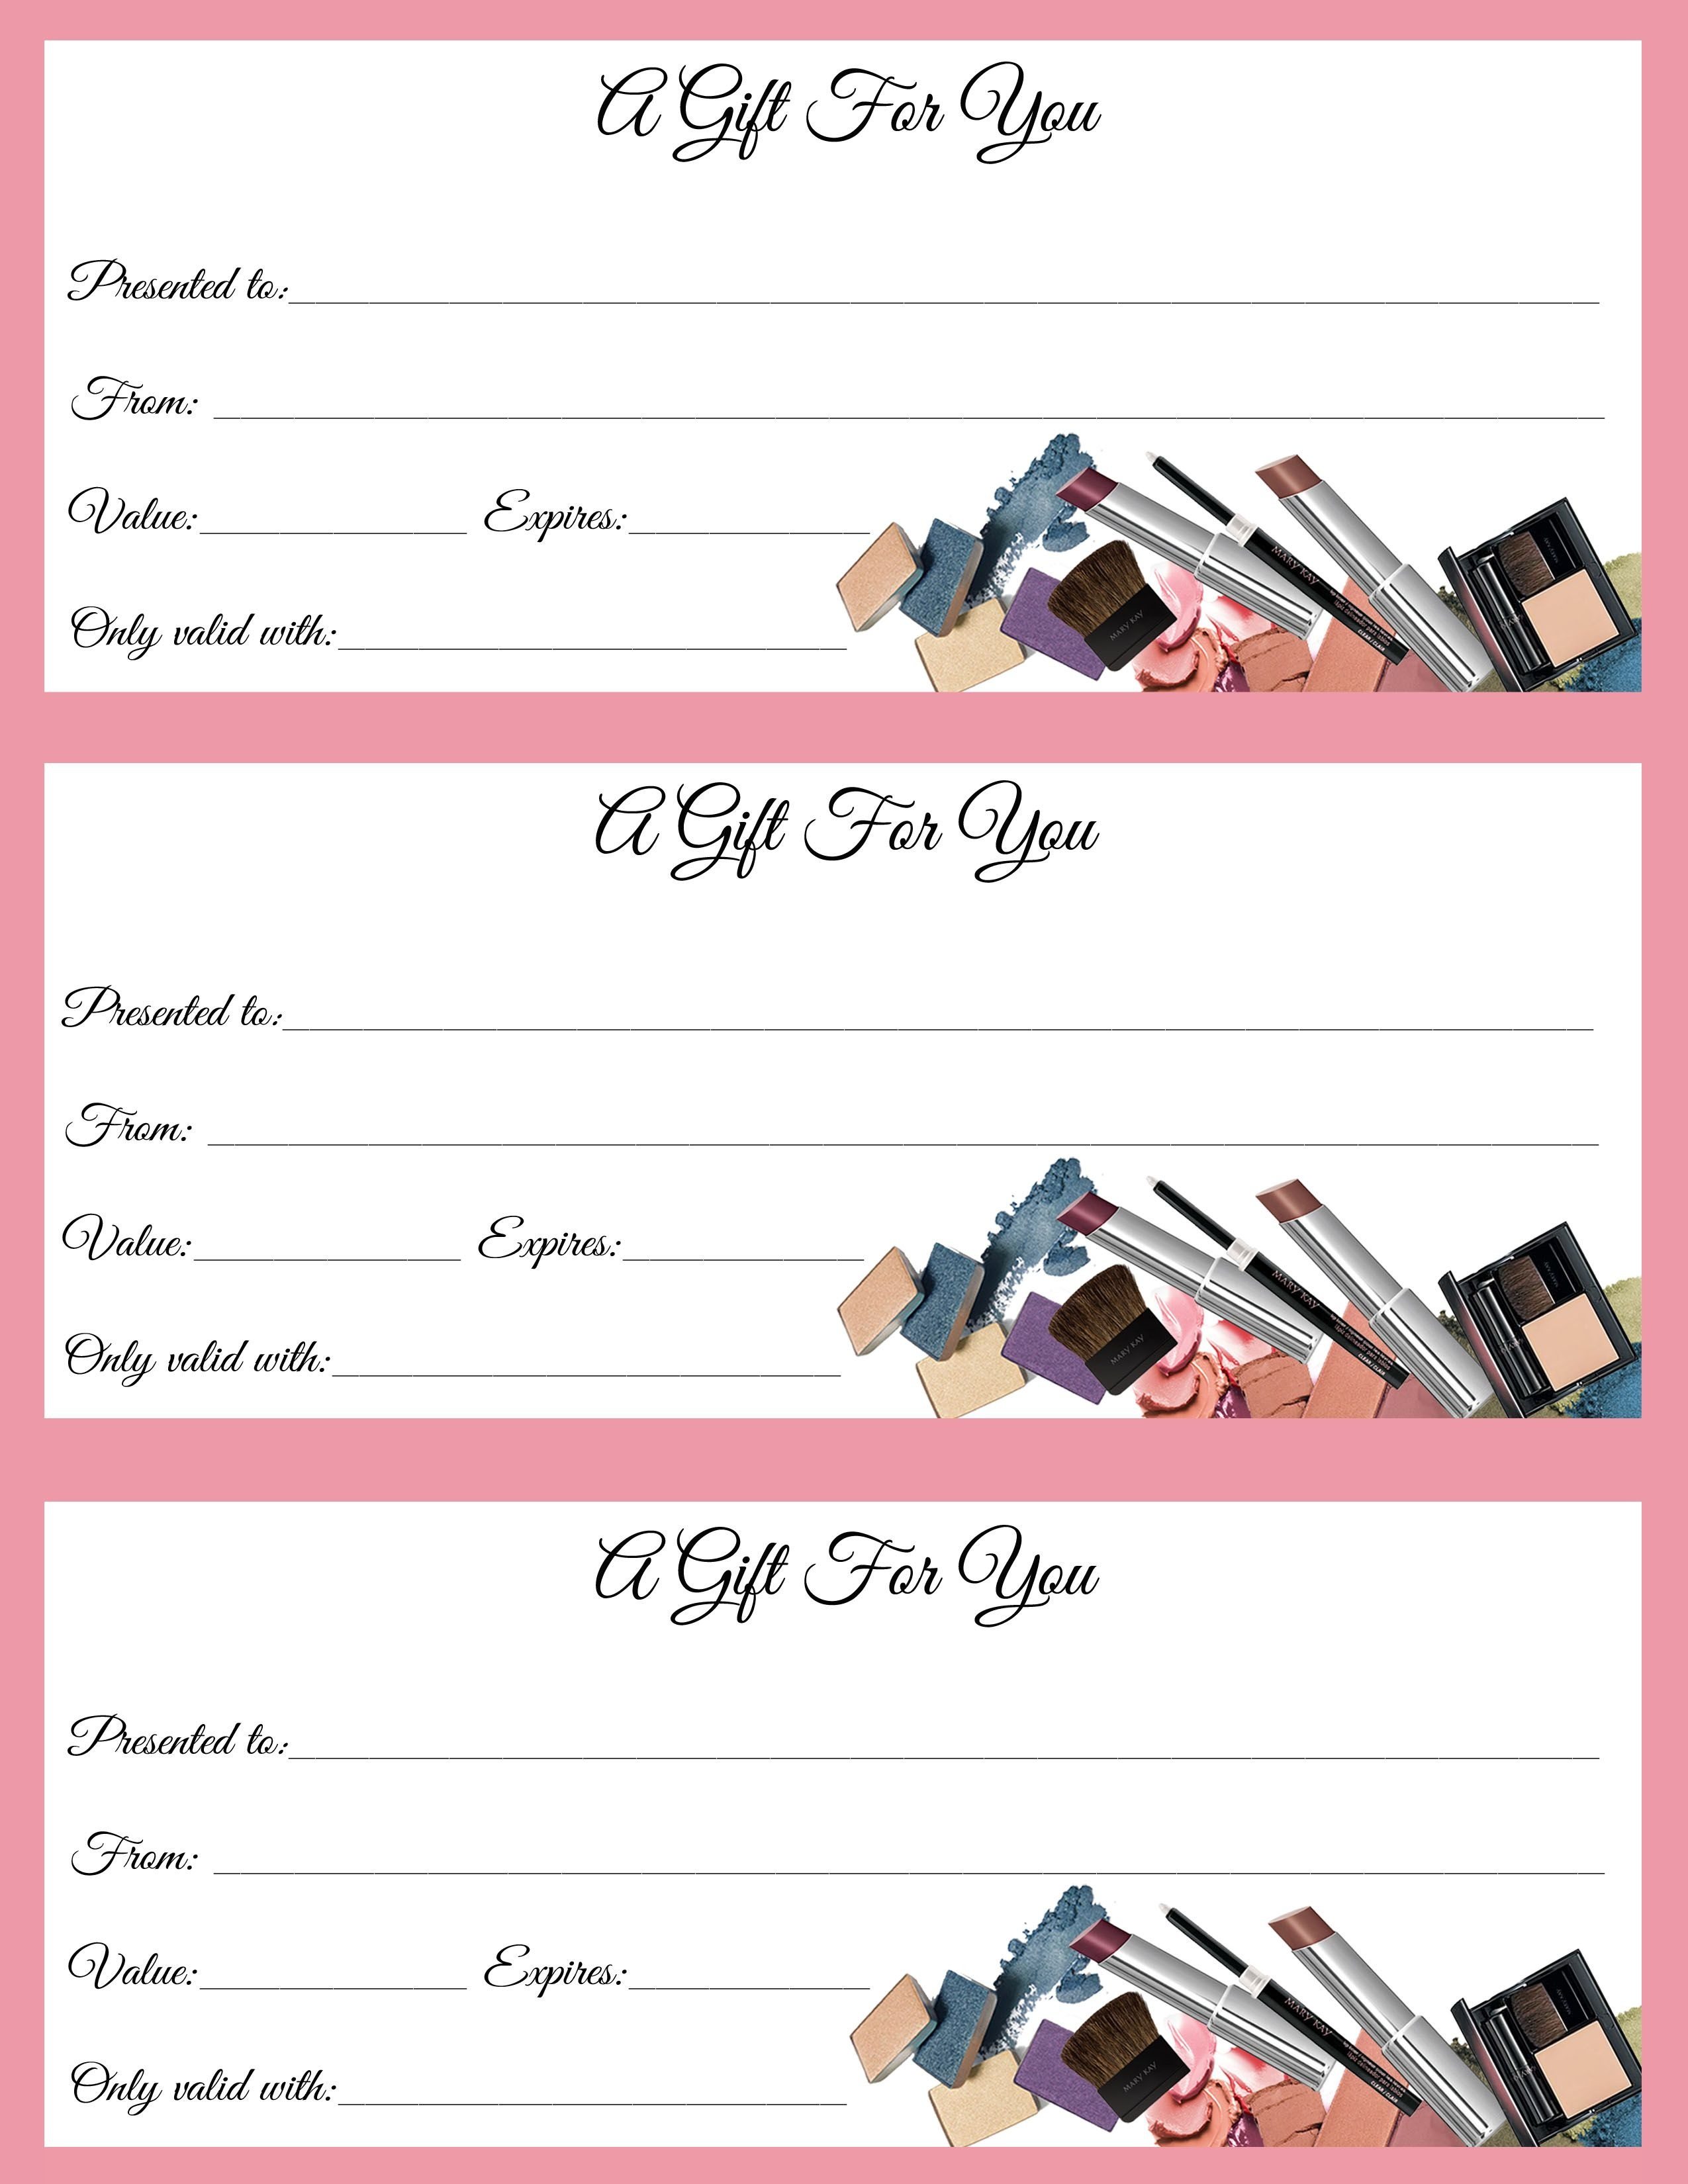 Gift Certificates Just In Time For Call Or Text To Order Jen Patrick - Free Printable Gift Coupons